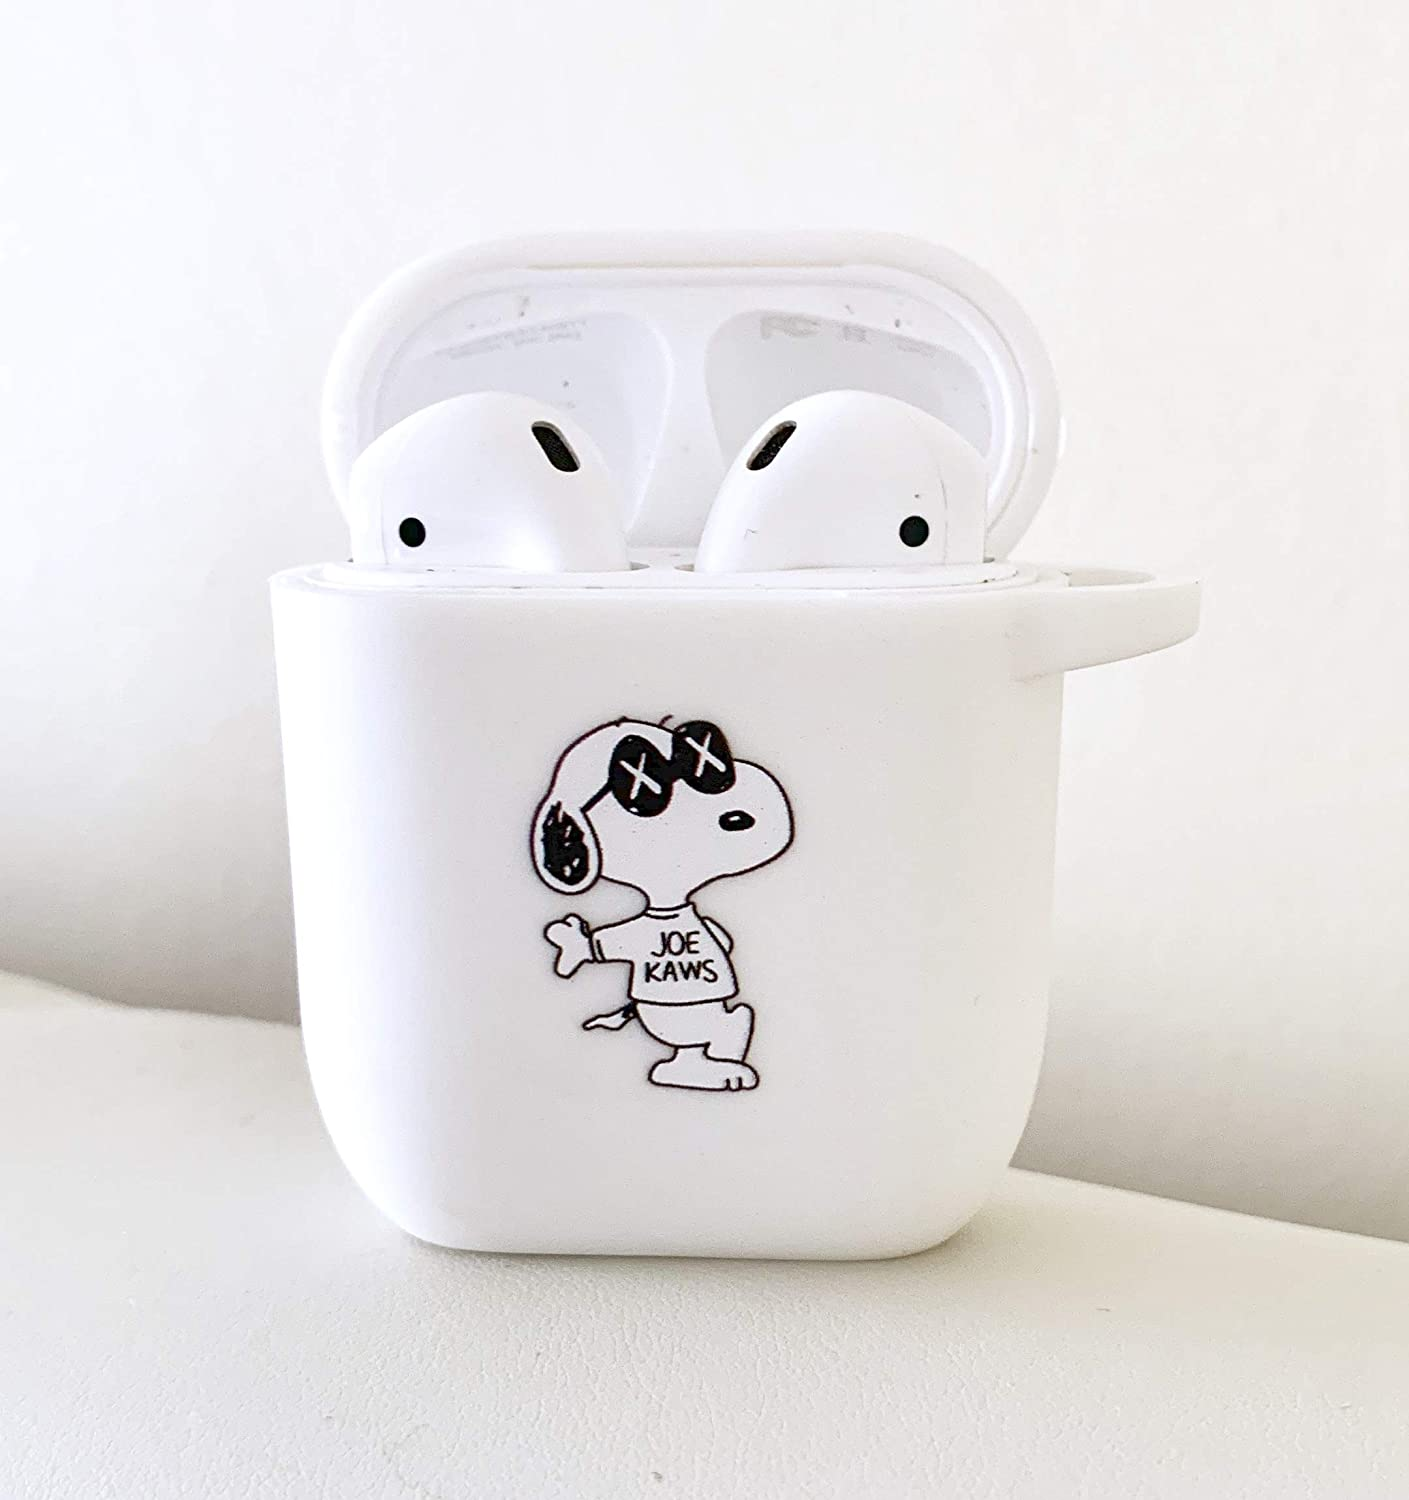 Charlie /& Snoopy Hug Cute Cartoon TPU Silicone Case for Apple AirPods Shockproof Cover fits 1st /& 2nd Generation